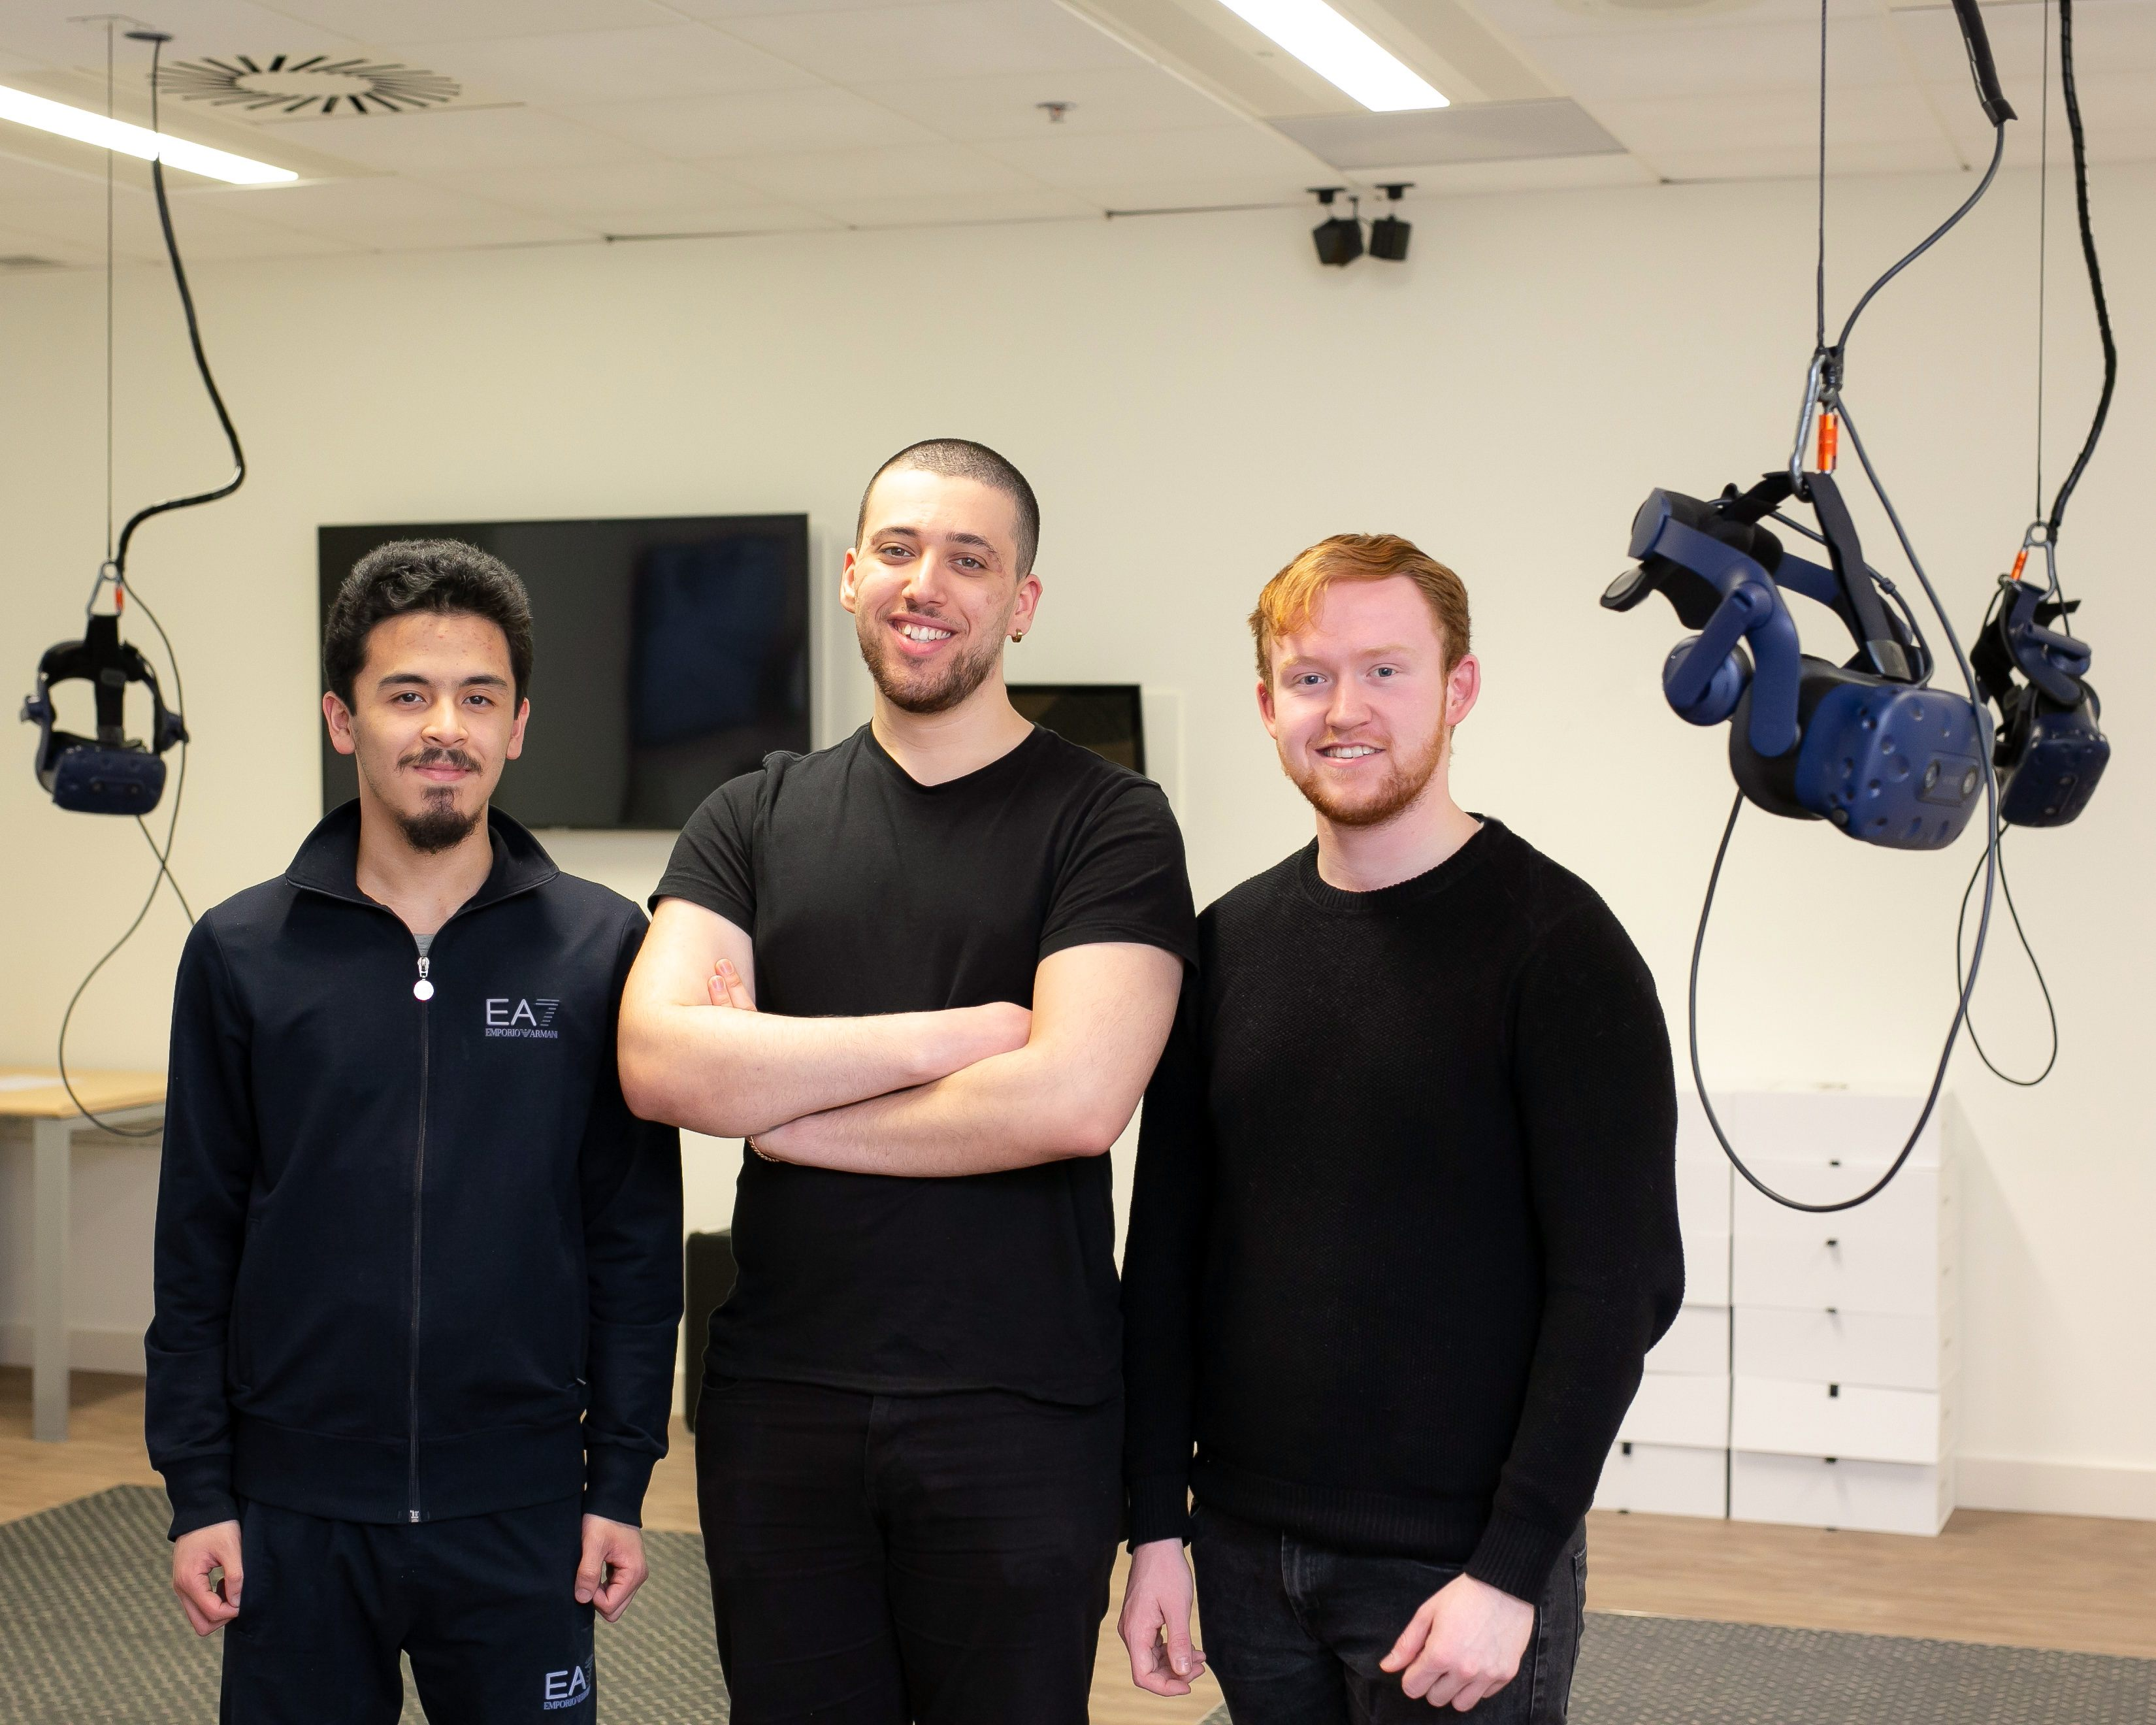 TU Dublin students Reda Ali Mohammed, Eurico Carajote, and Ryan Byrne are pictured at the Intel campus in Leixlip